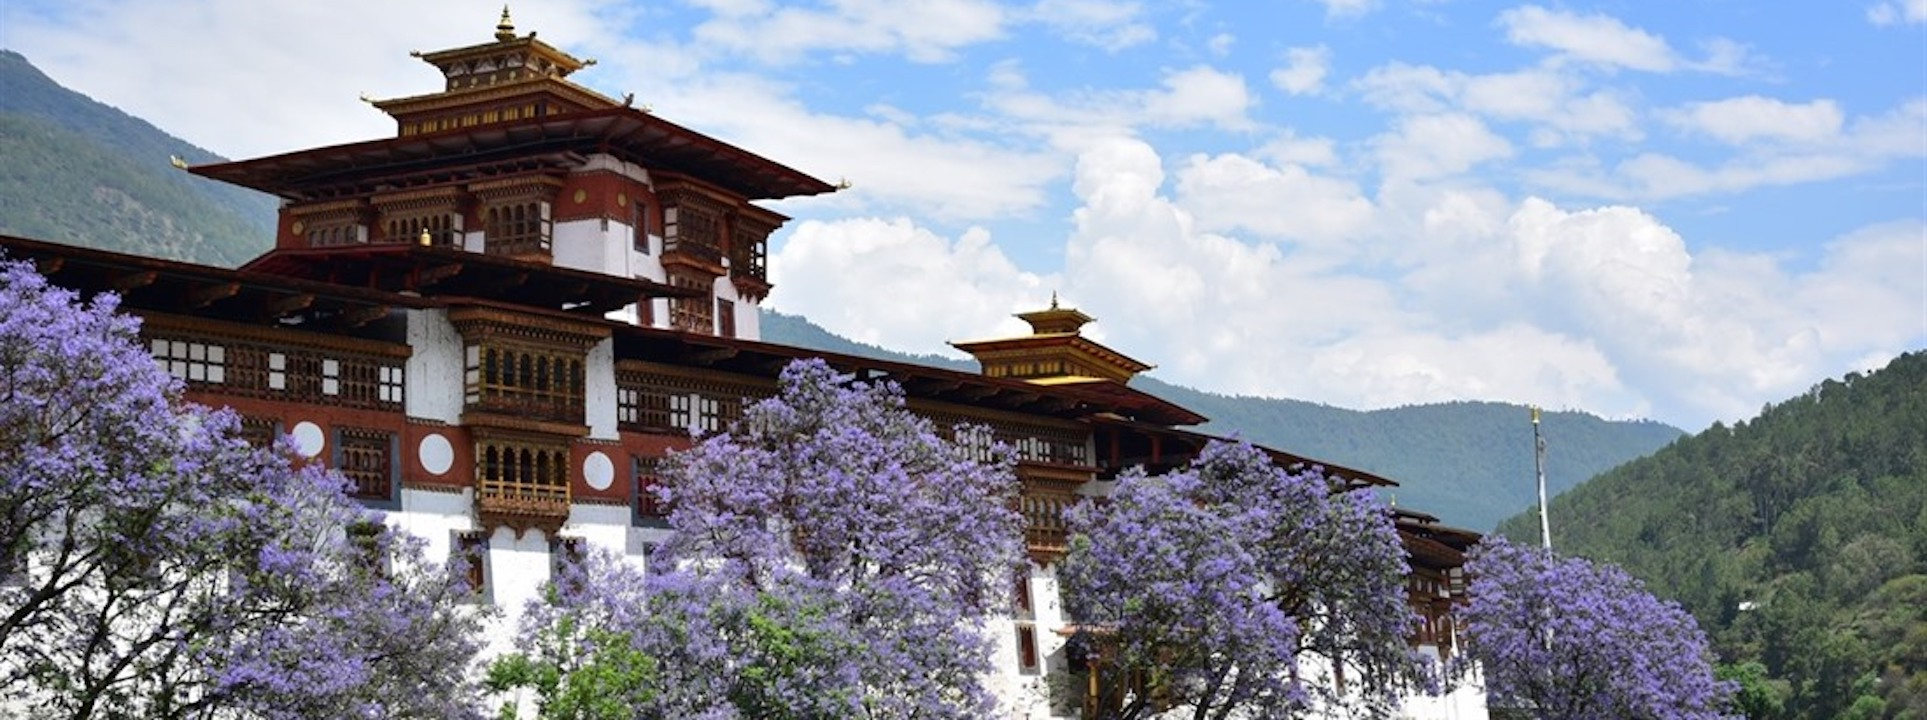 4 Day Tast of Bhutan Deluxe Private tour (economy class flight from Bangkok included) Shoulder Season